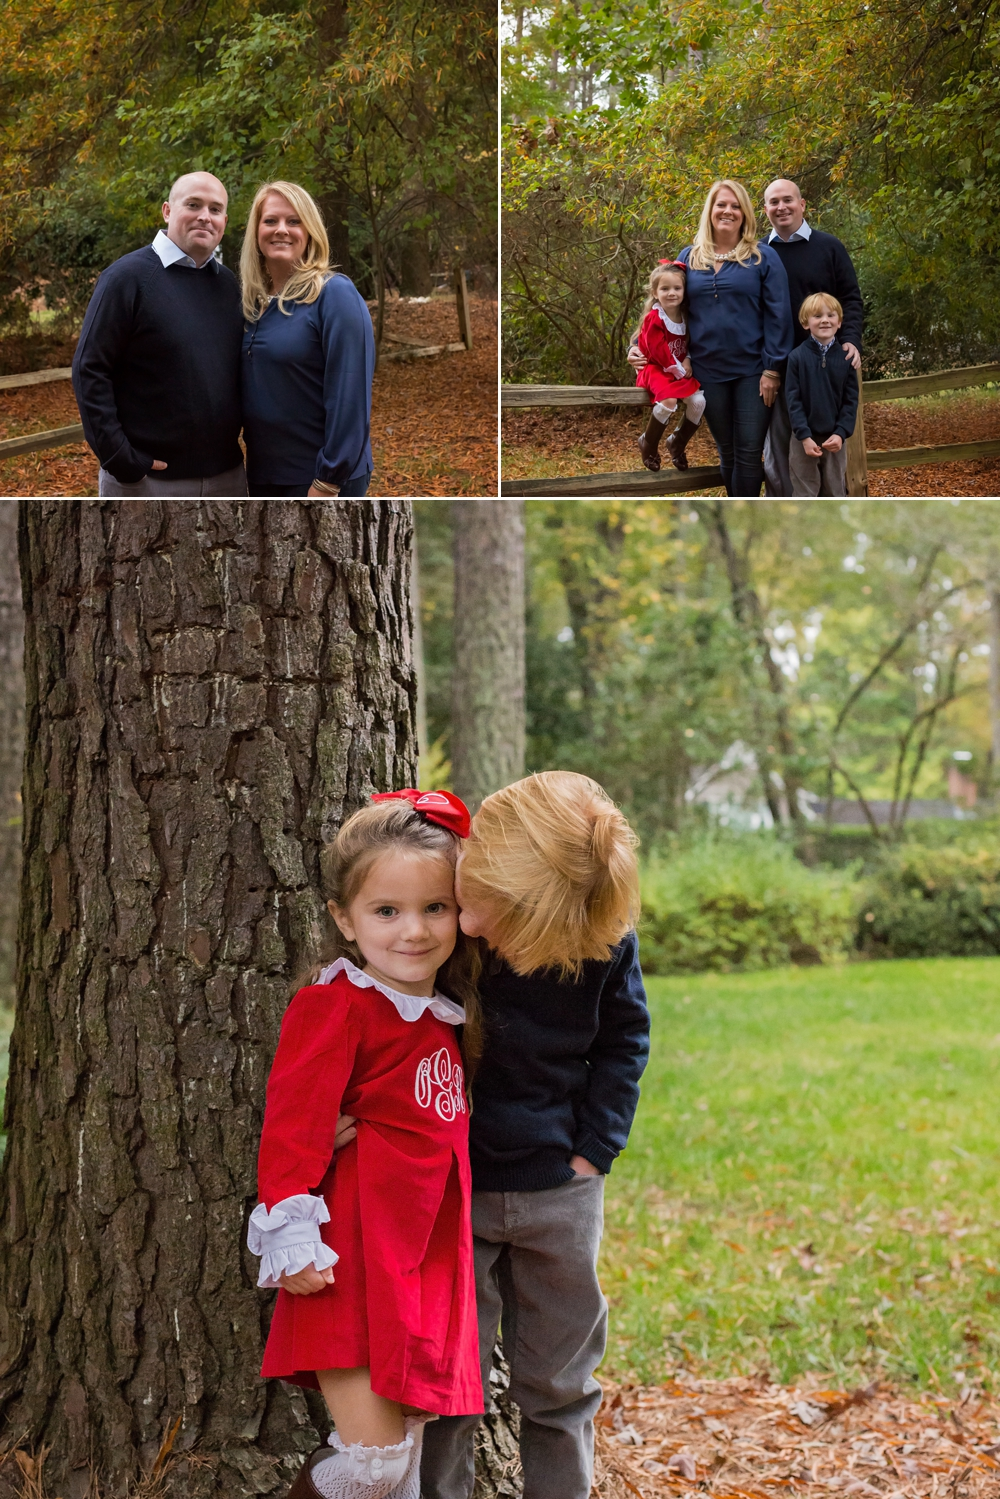 Smaller family unit poses among fall foliage during Sanford family photography session.